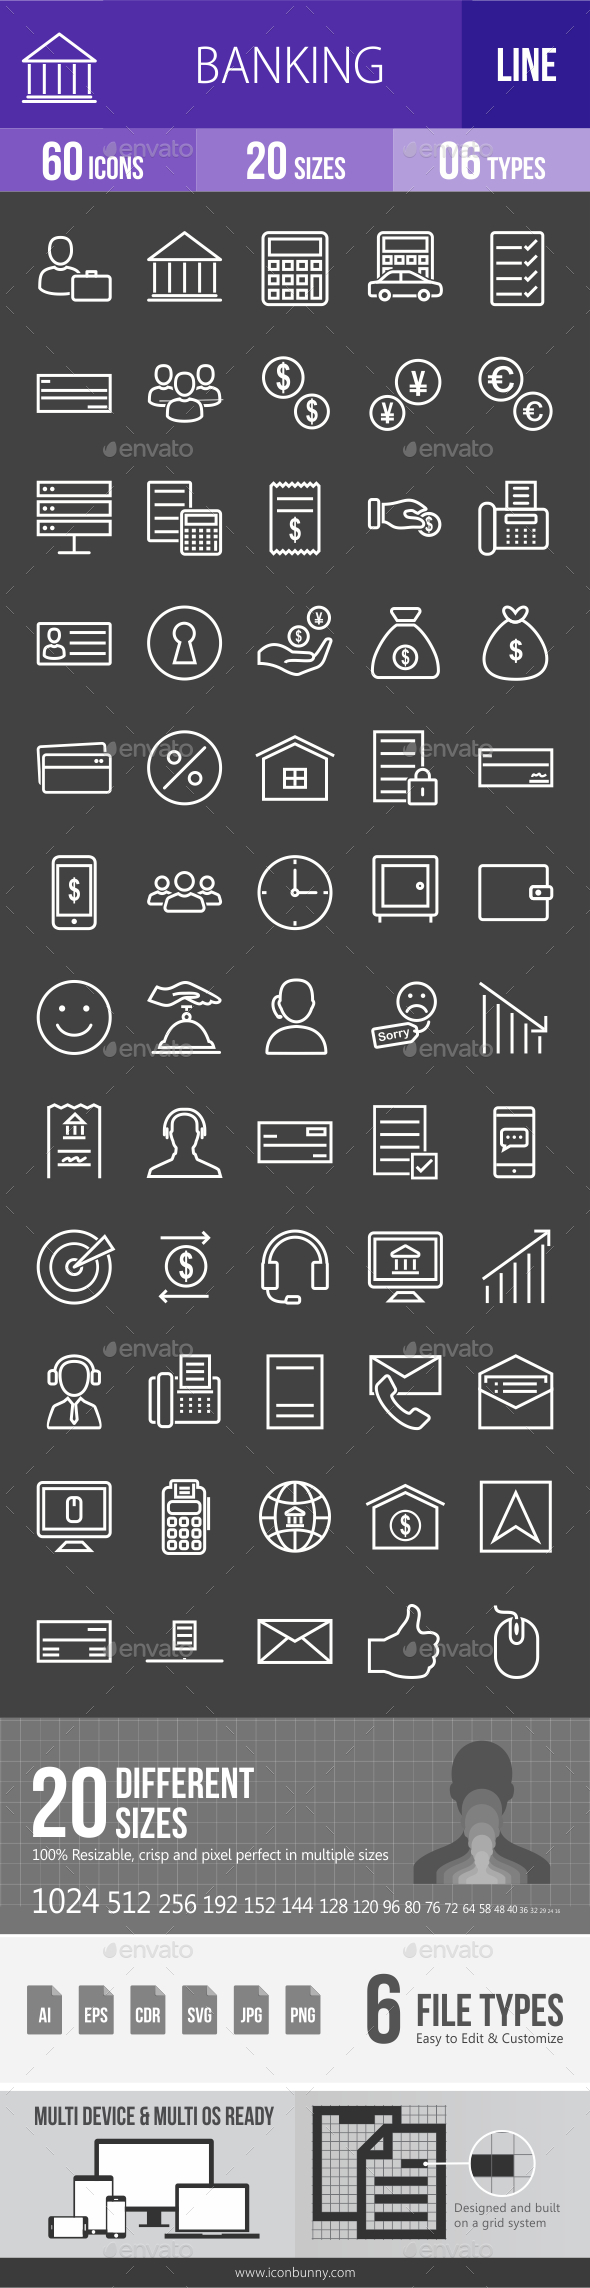 Banking Line Inverted Icons - Icons